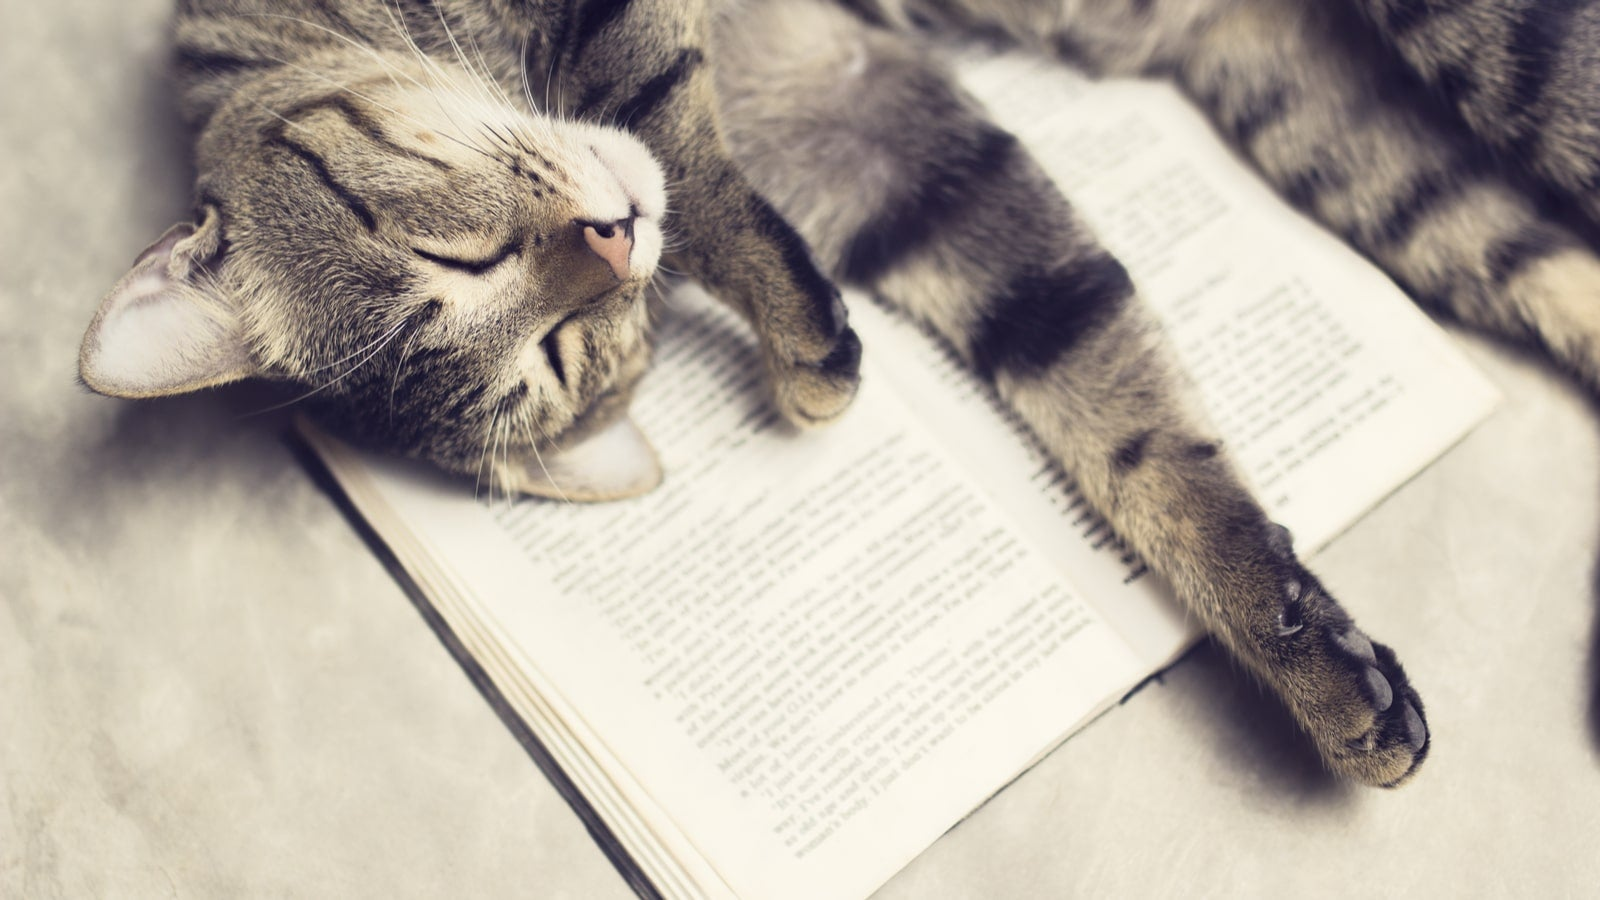 Peaceful cat laying on a book.